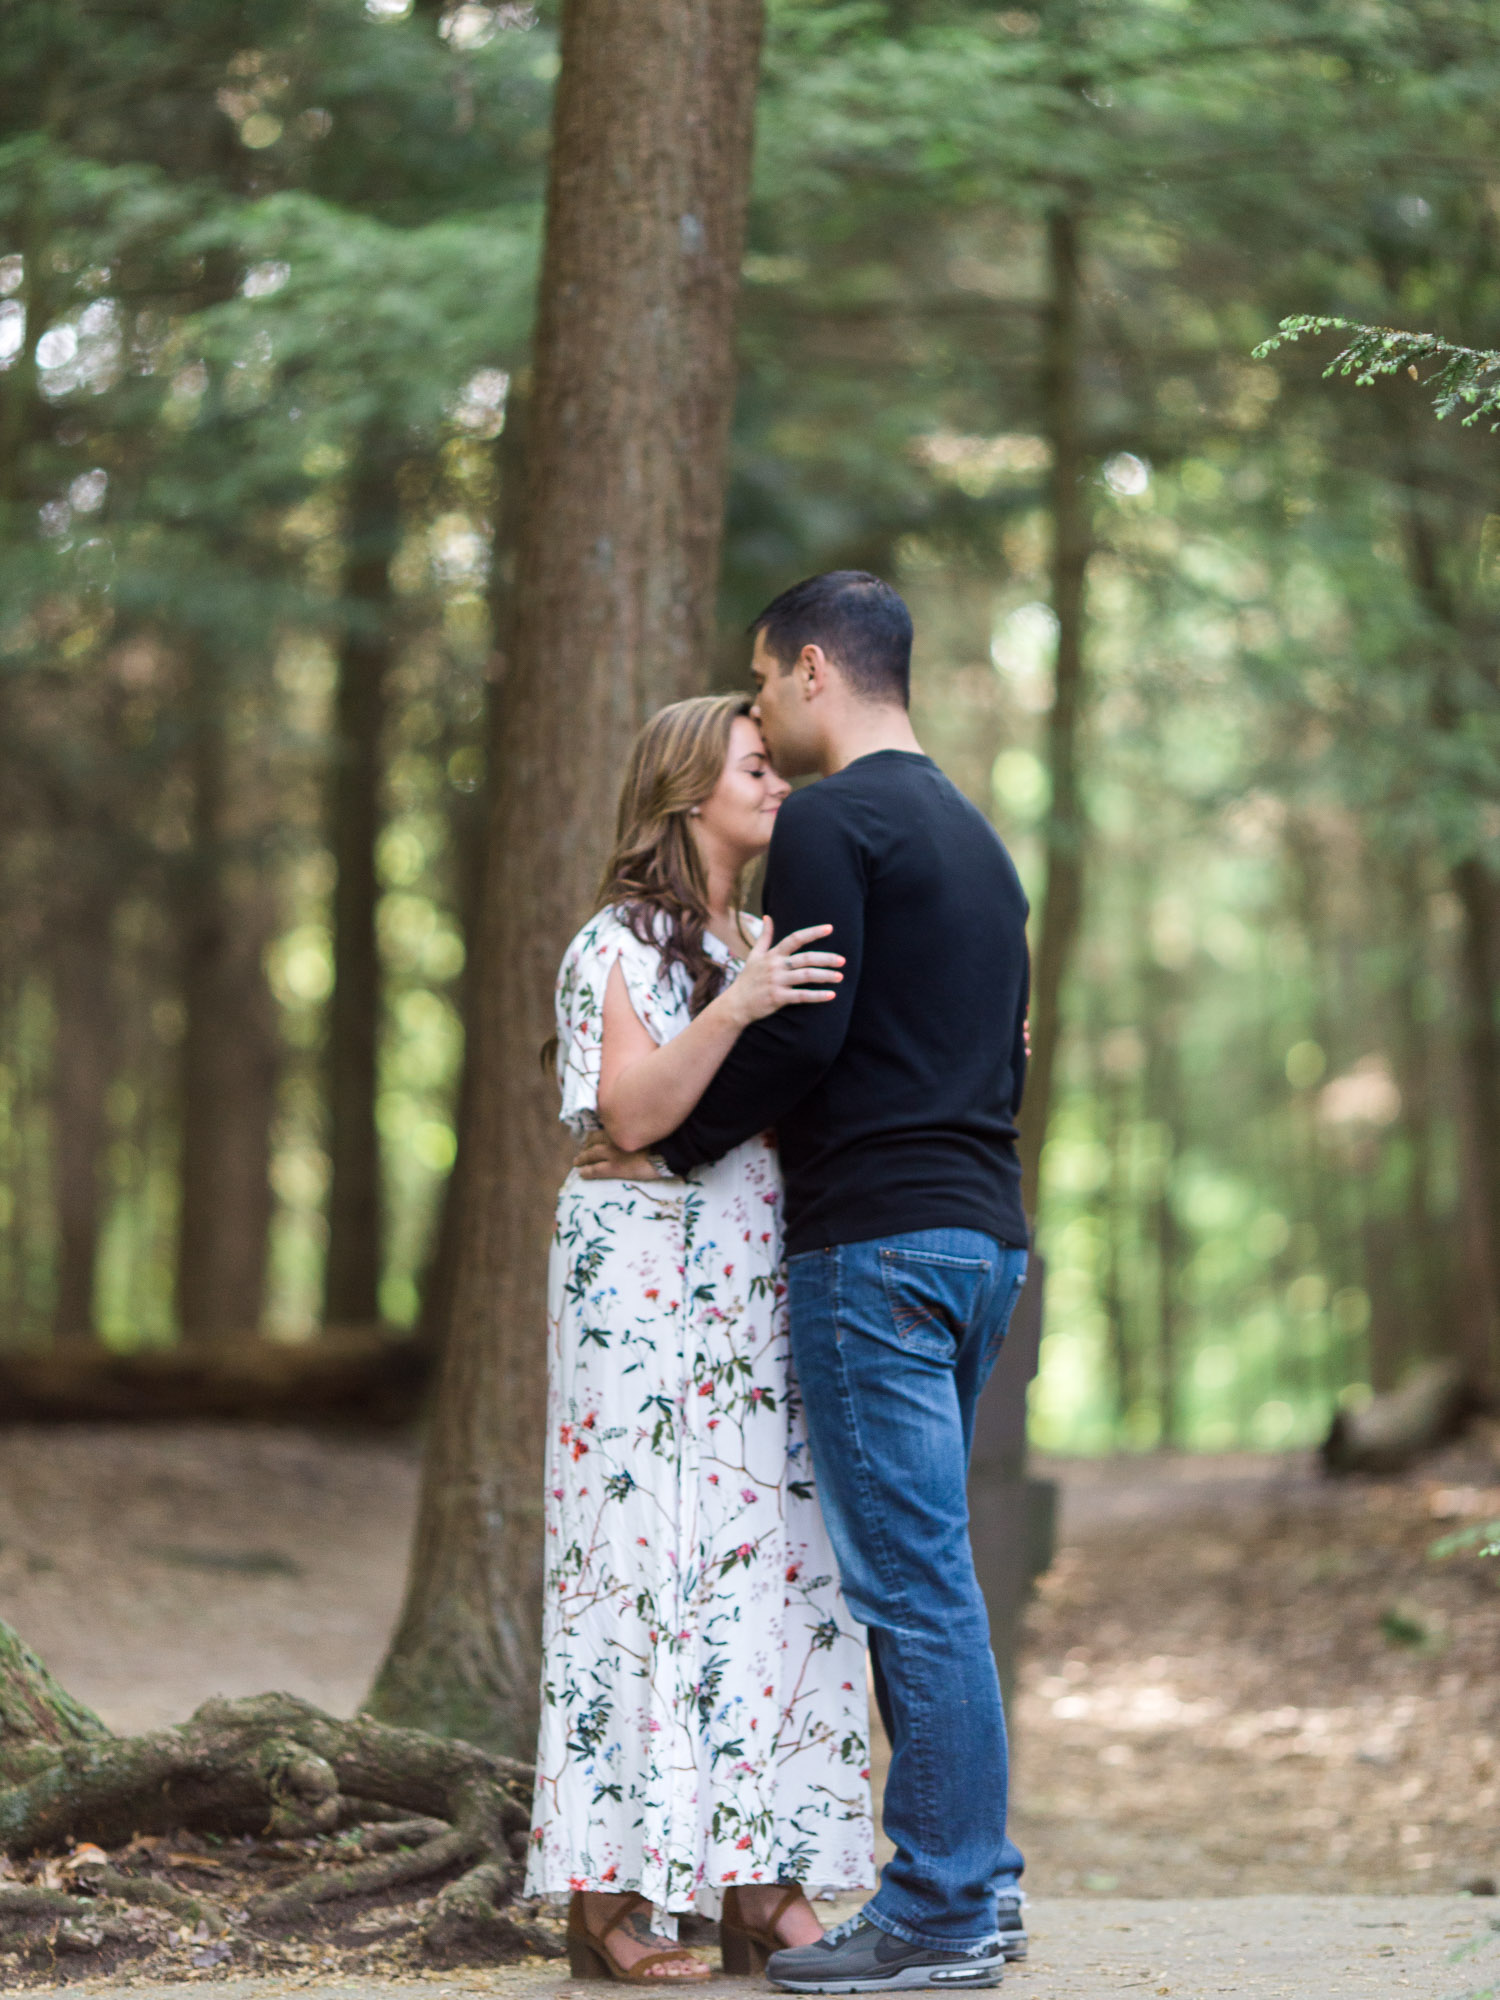 Engagement Photos in Cuyahoga Valley National Park by Cleveland Wedding Photographer Matt Erickson Photography